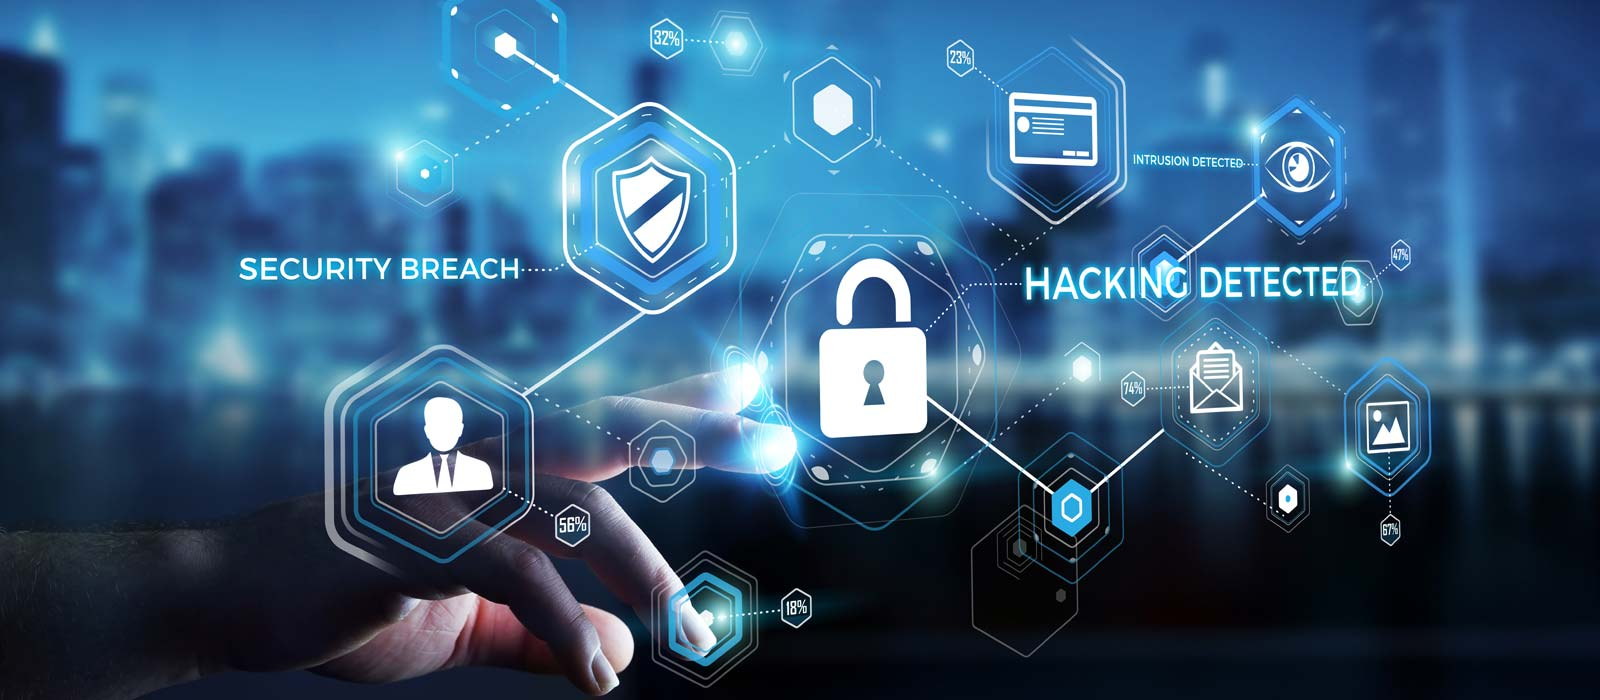 10 Types of Cyber Security Attacks in IoT